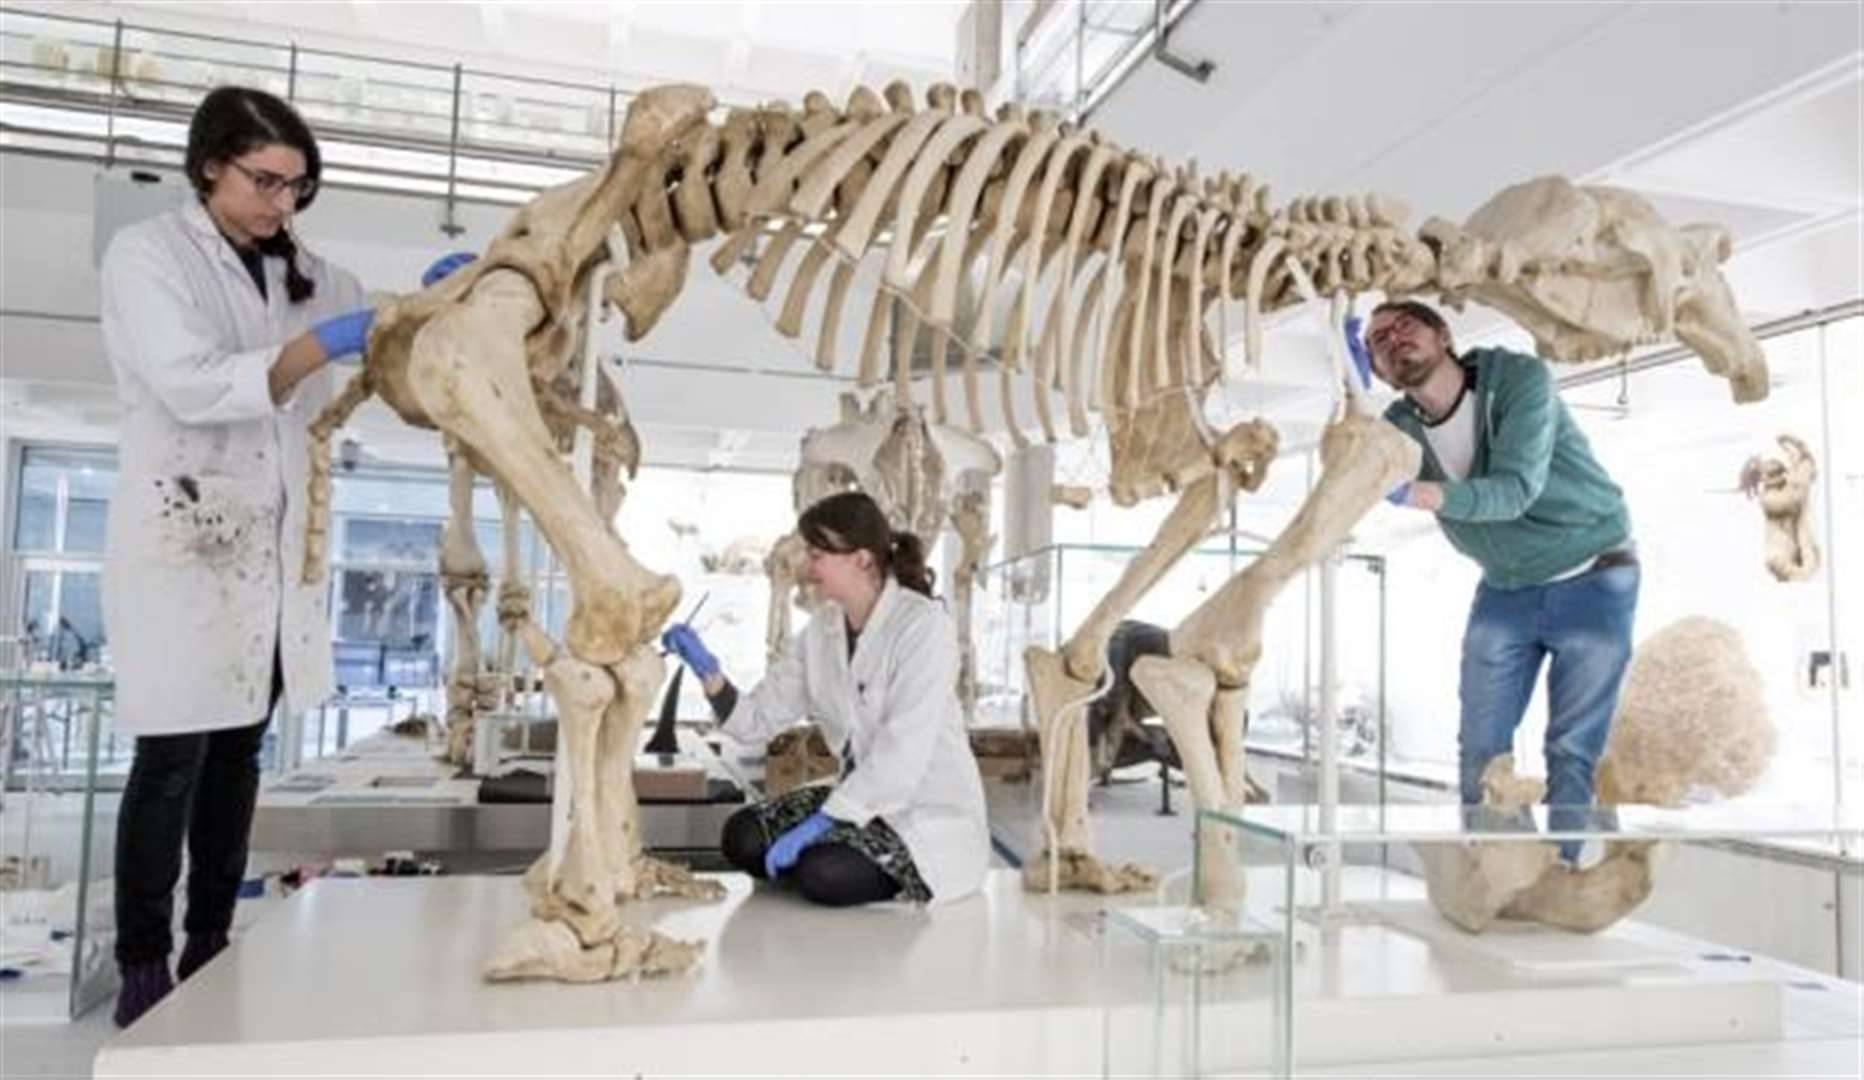 The Museum of Zoology in Cambridge is set to reopen its doors after a revamp